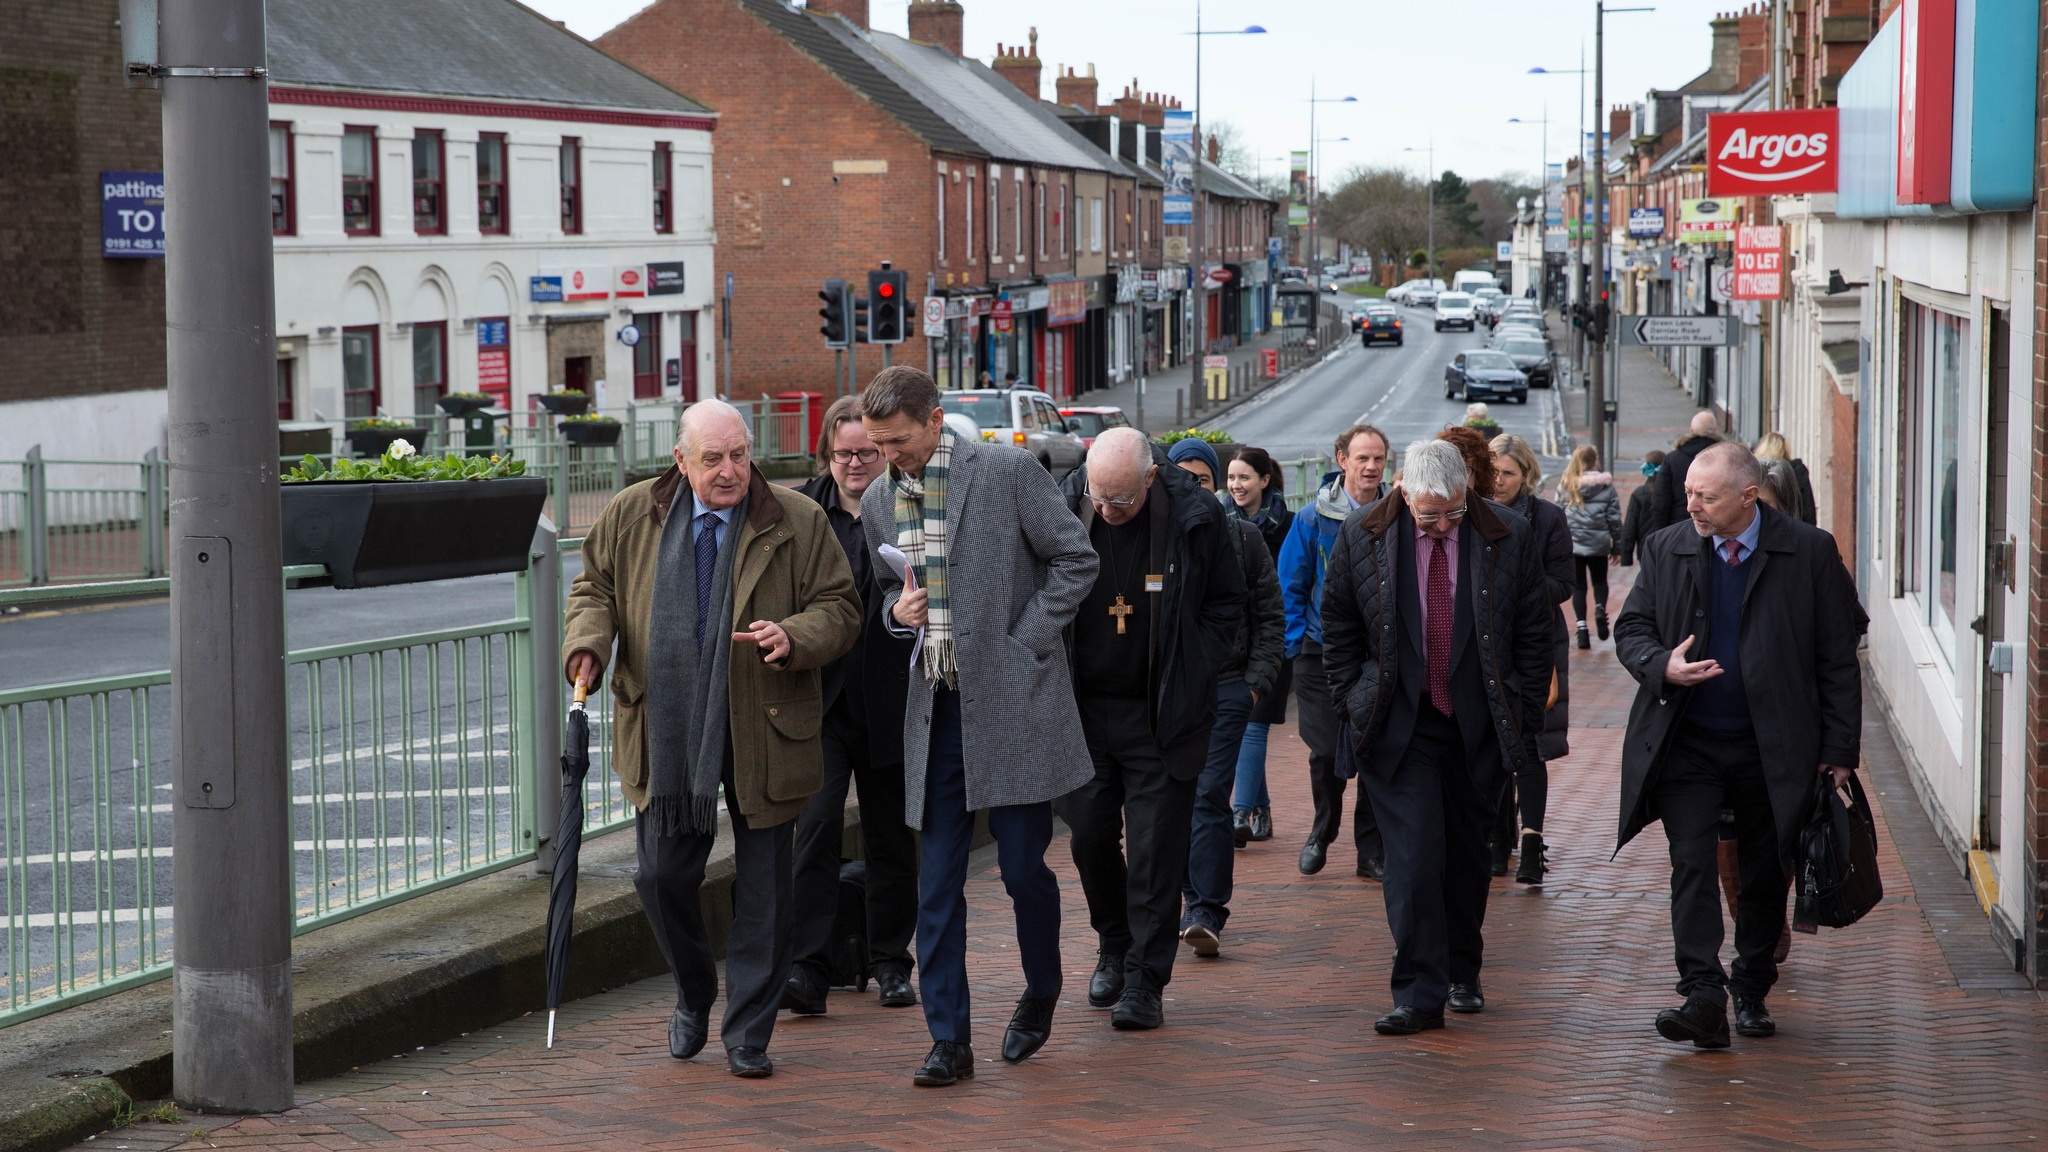 The Bank of England's Chief Economist, Andy Haldane, visits communities in Ashington accompanied by the Just Finance Foundation, local community and Church of England representatives